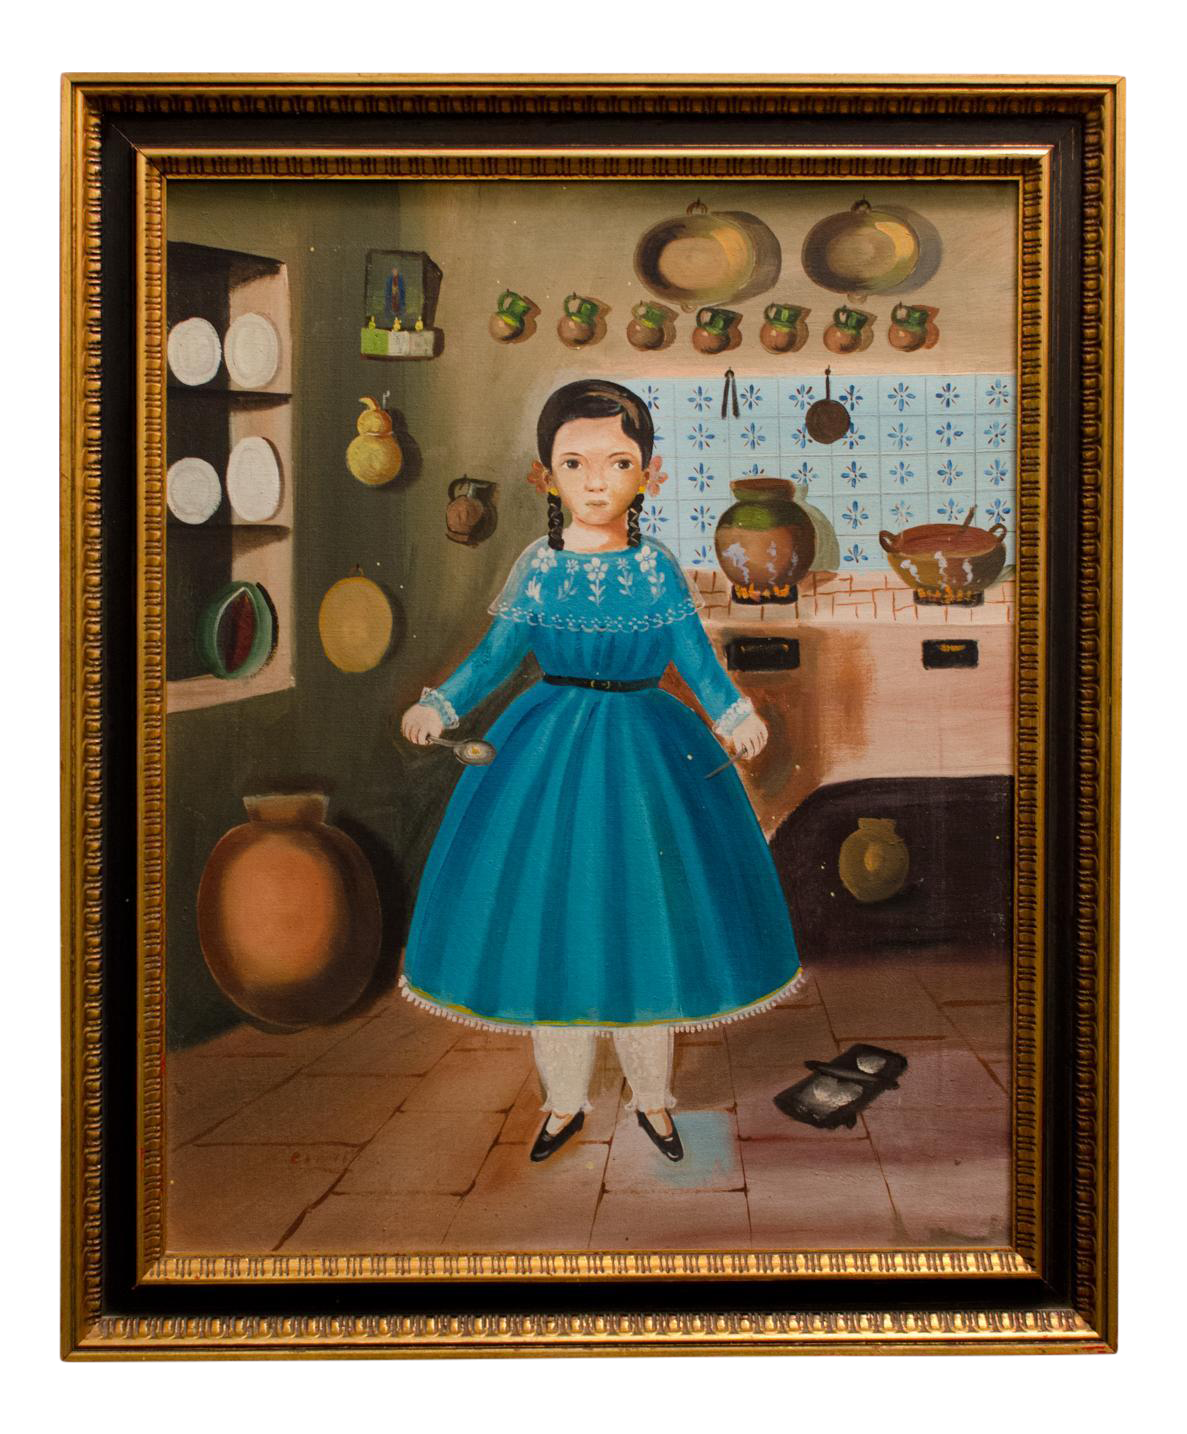 1950 39girl in kitchen39 painting by lilia carrillo chairish for Best brand of paint for kitchen cabinets with seashell prints wall art